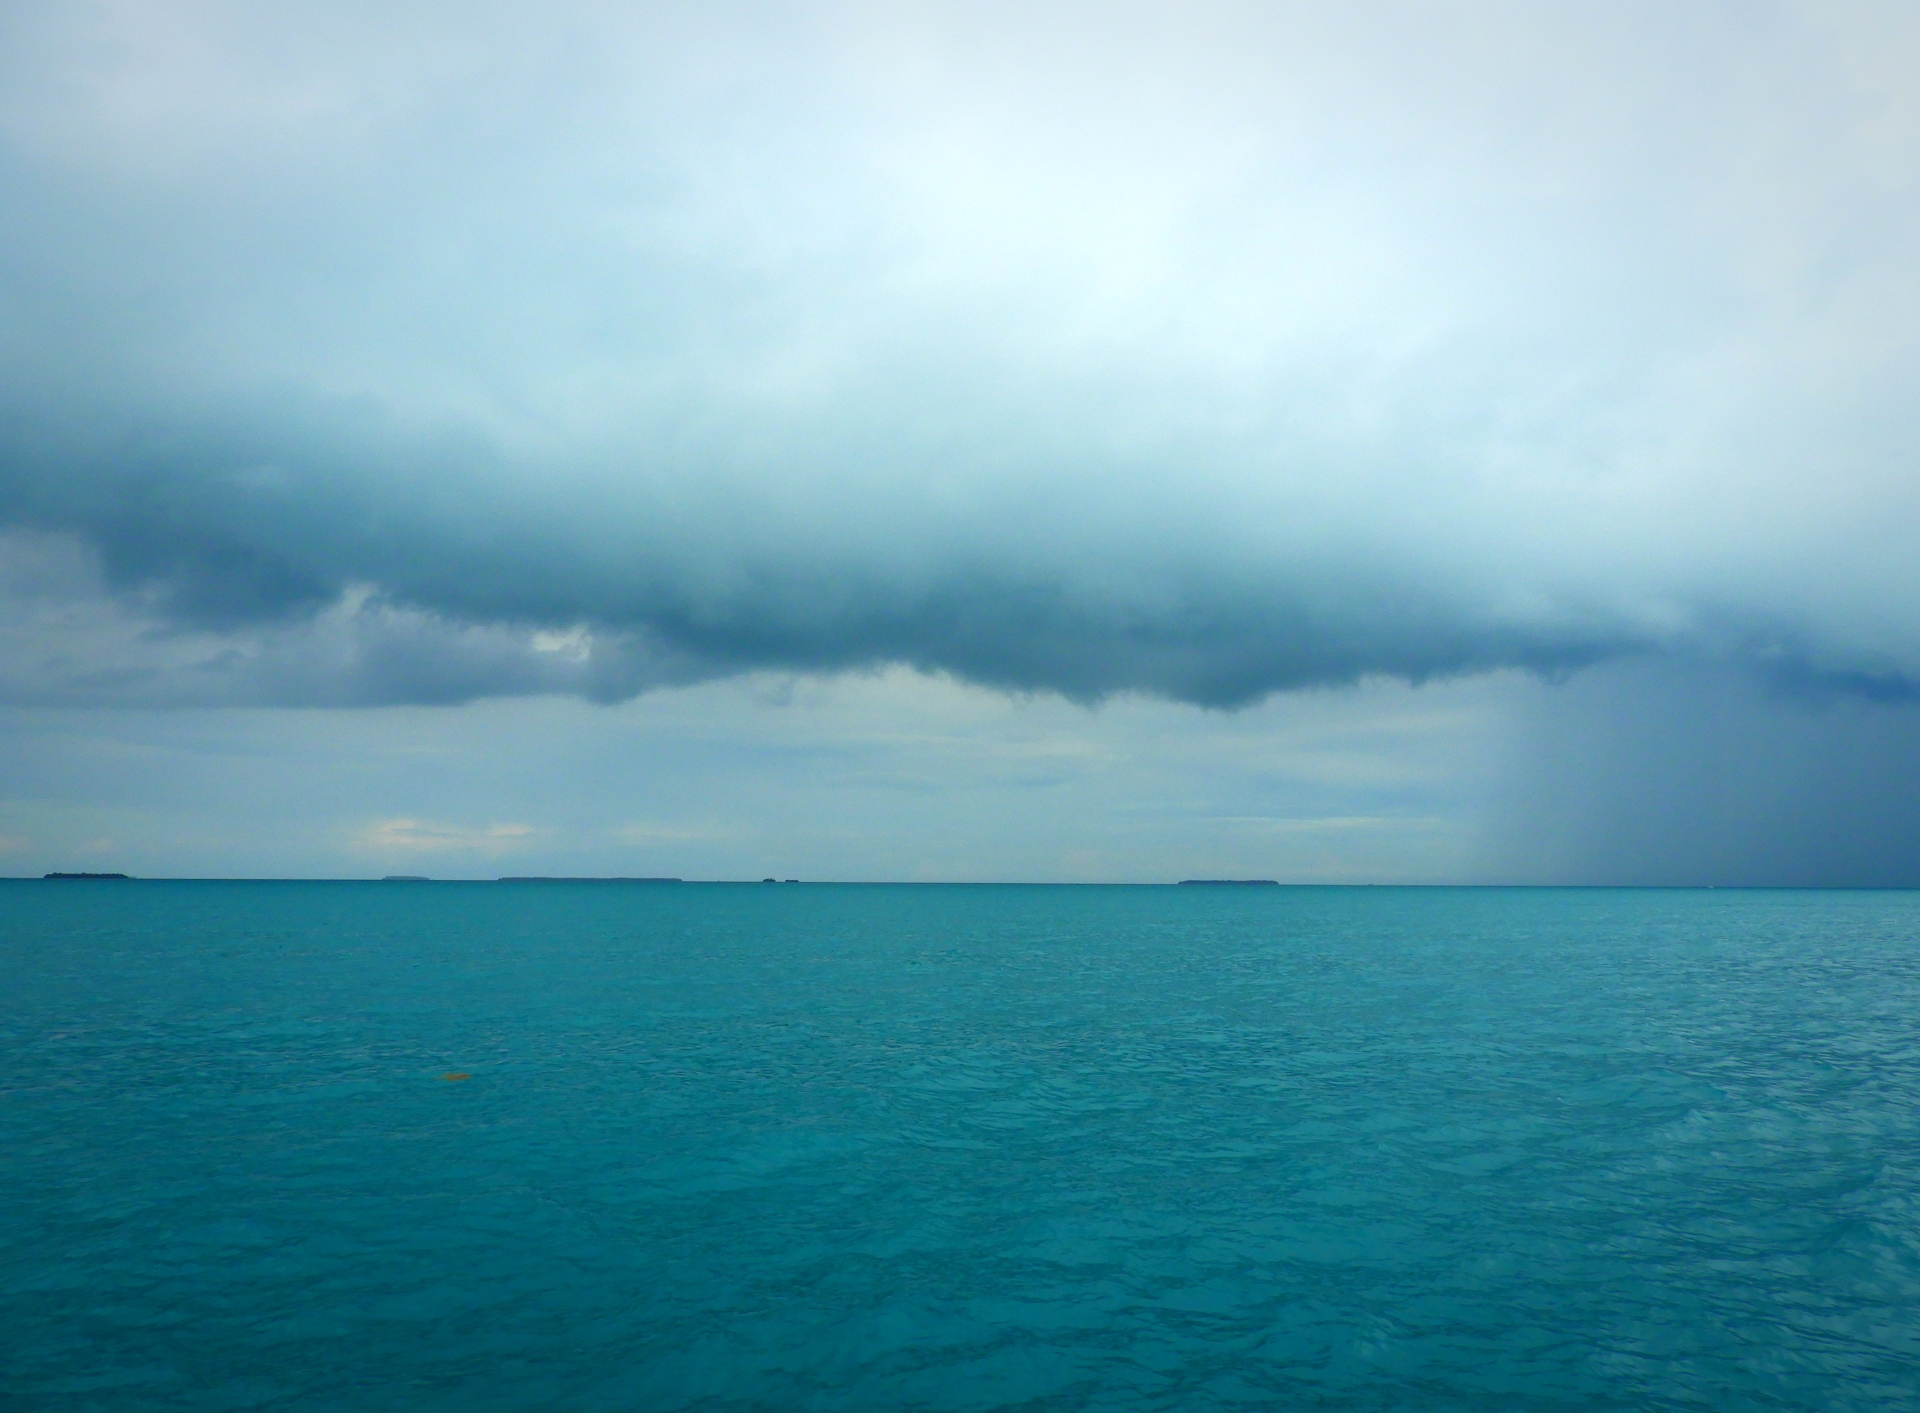 Squall on Gulf